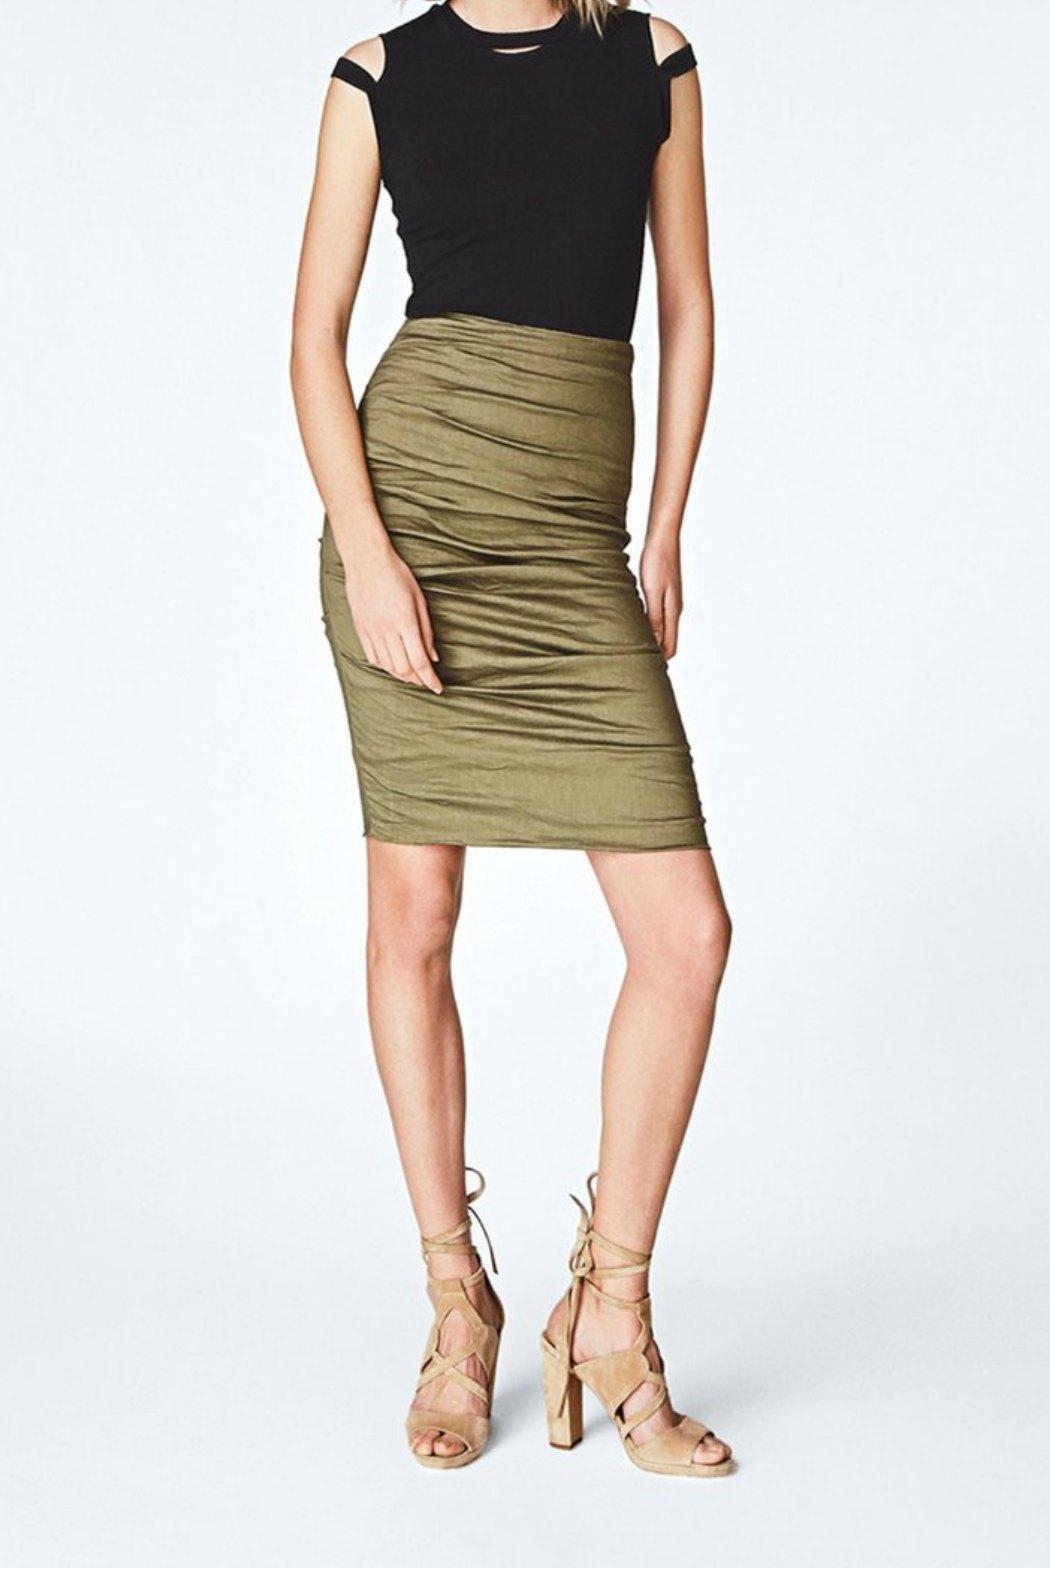 Nicole Miller Sandy Skirt - Front Cropped Image